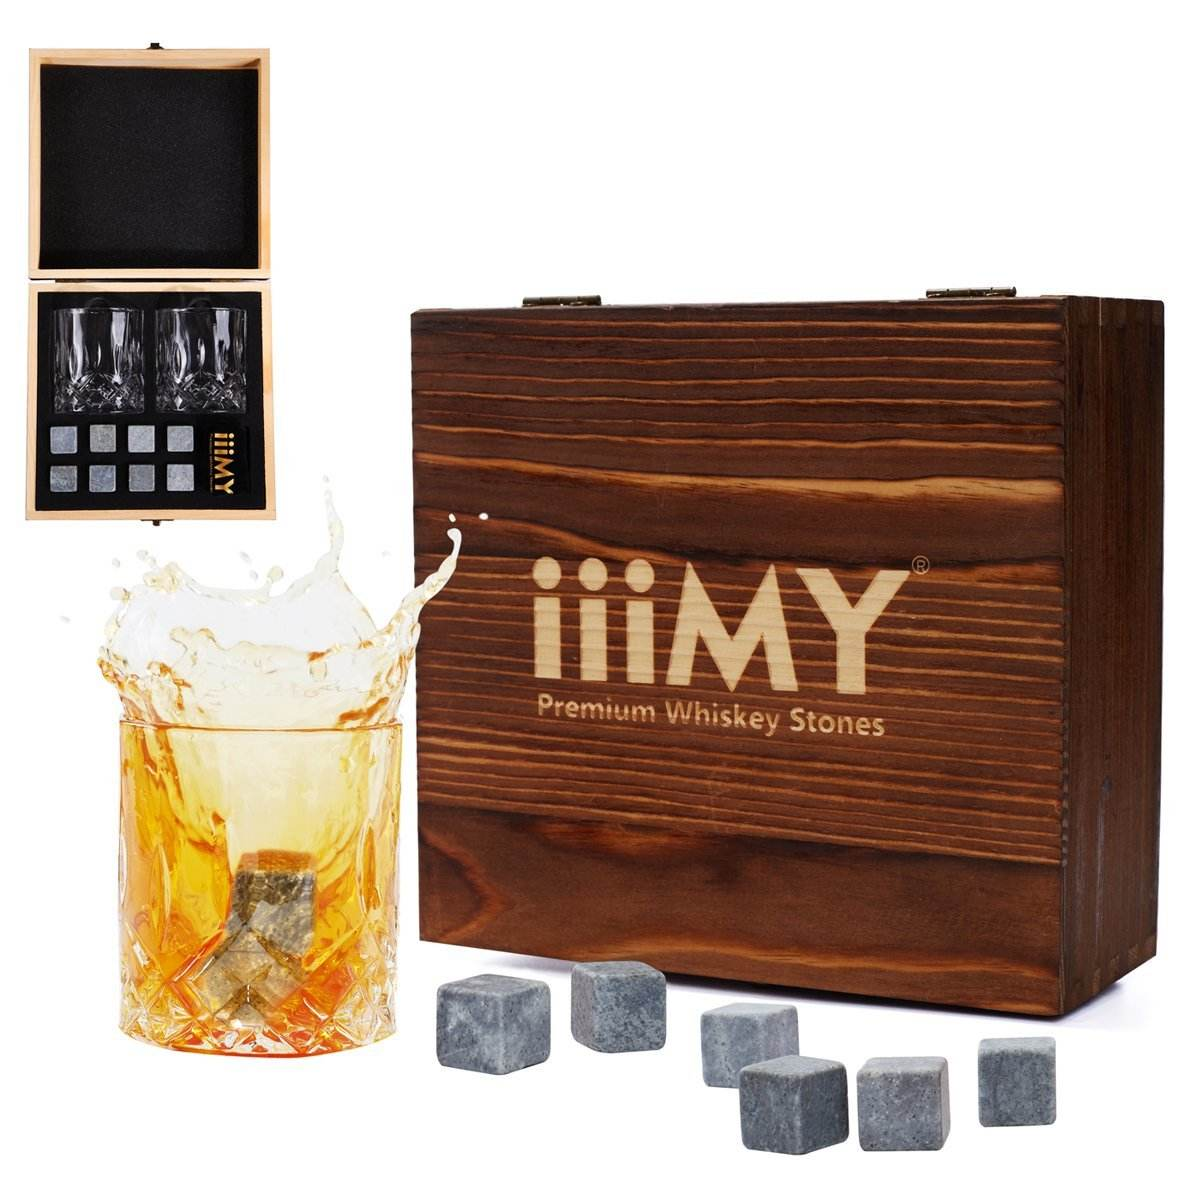 Whiskey Stones and Glasses Gift Set, Whisky Rocks Chilling Stones in Handmade Wooden Box Cool Drinks Without Dilutione